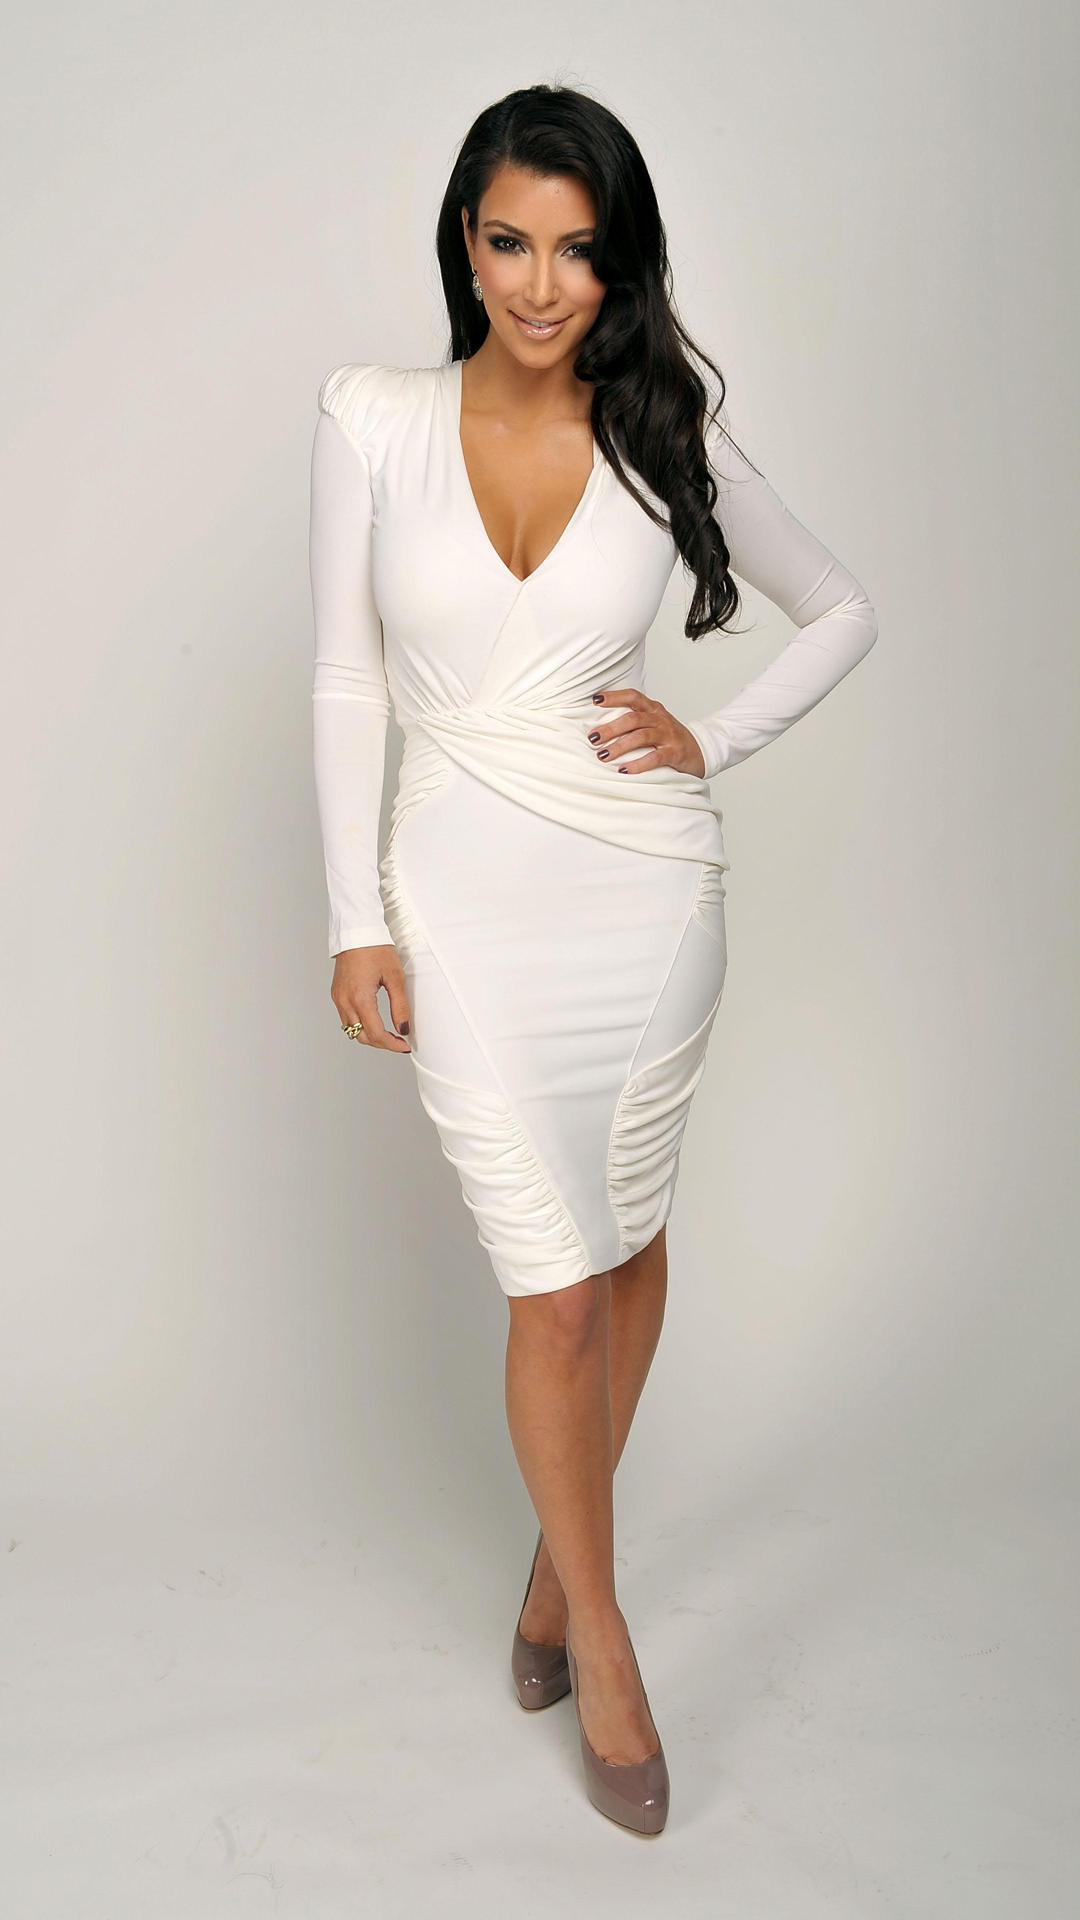 Kim Kardashian Htc One Wallpaper